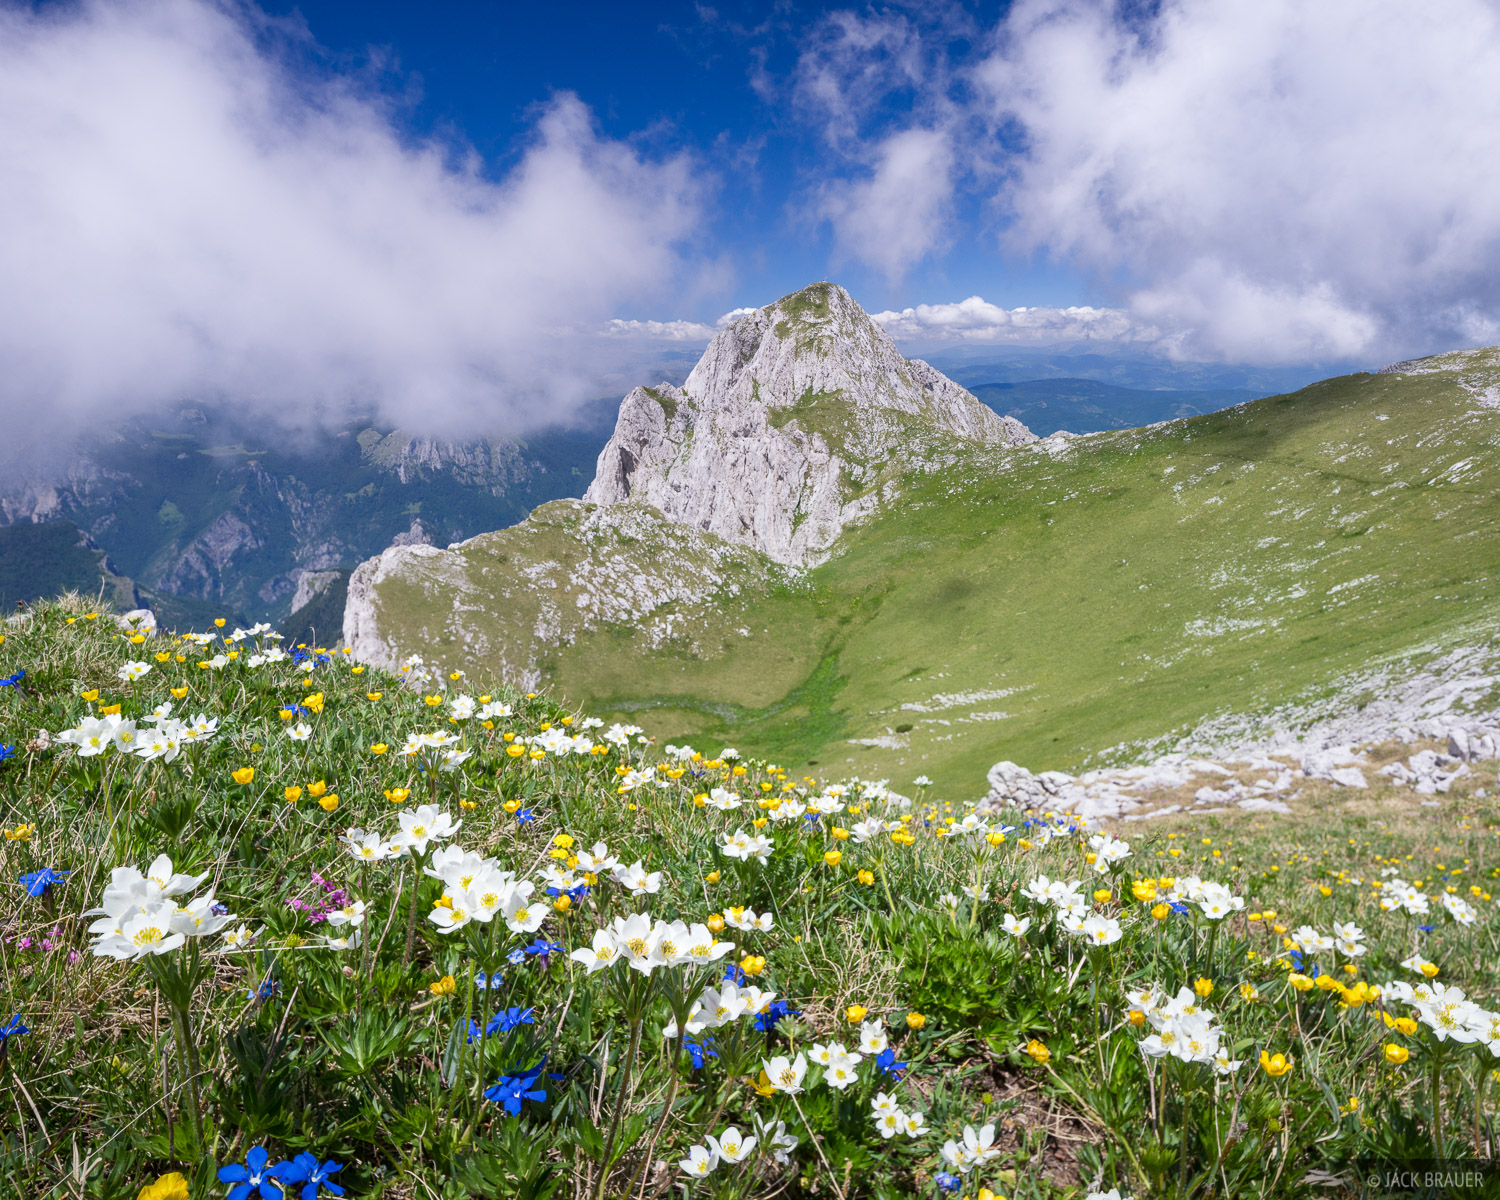 Maglič, Bosnia, Dinaric Alps, Montenegro, wildflowers, Maglic, photo